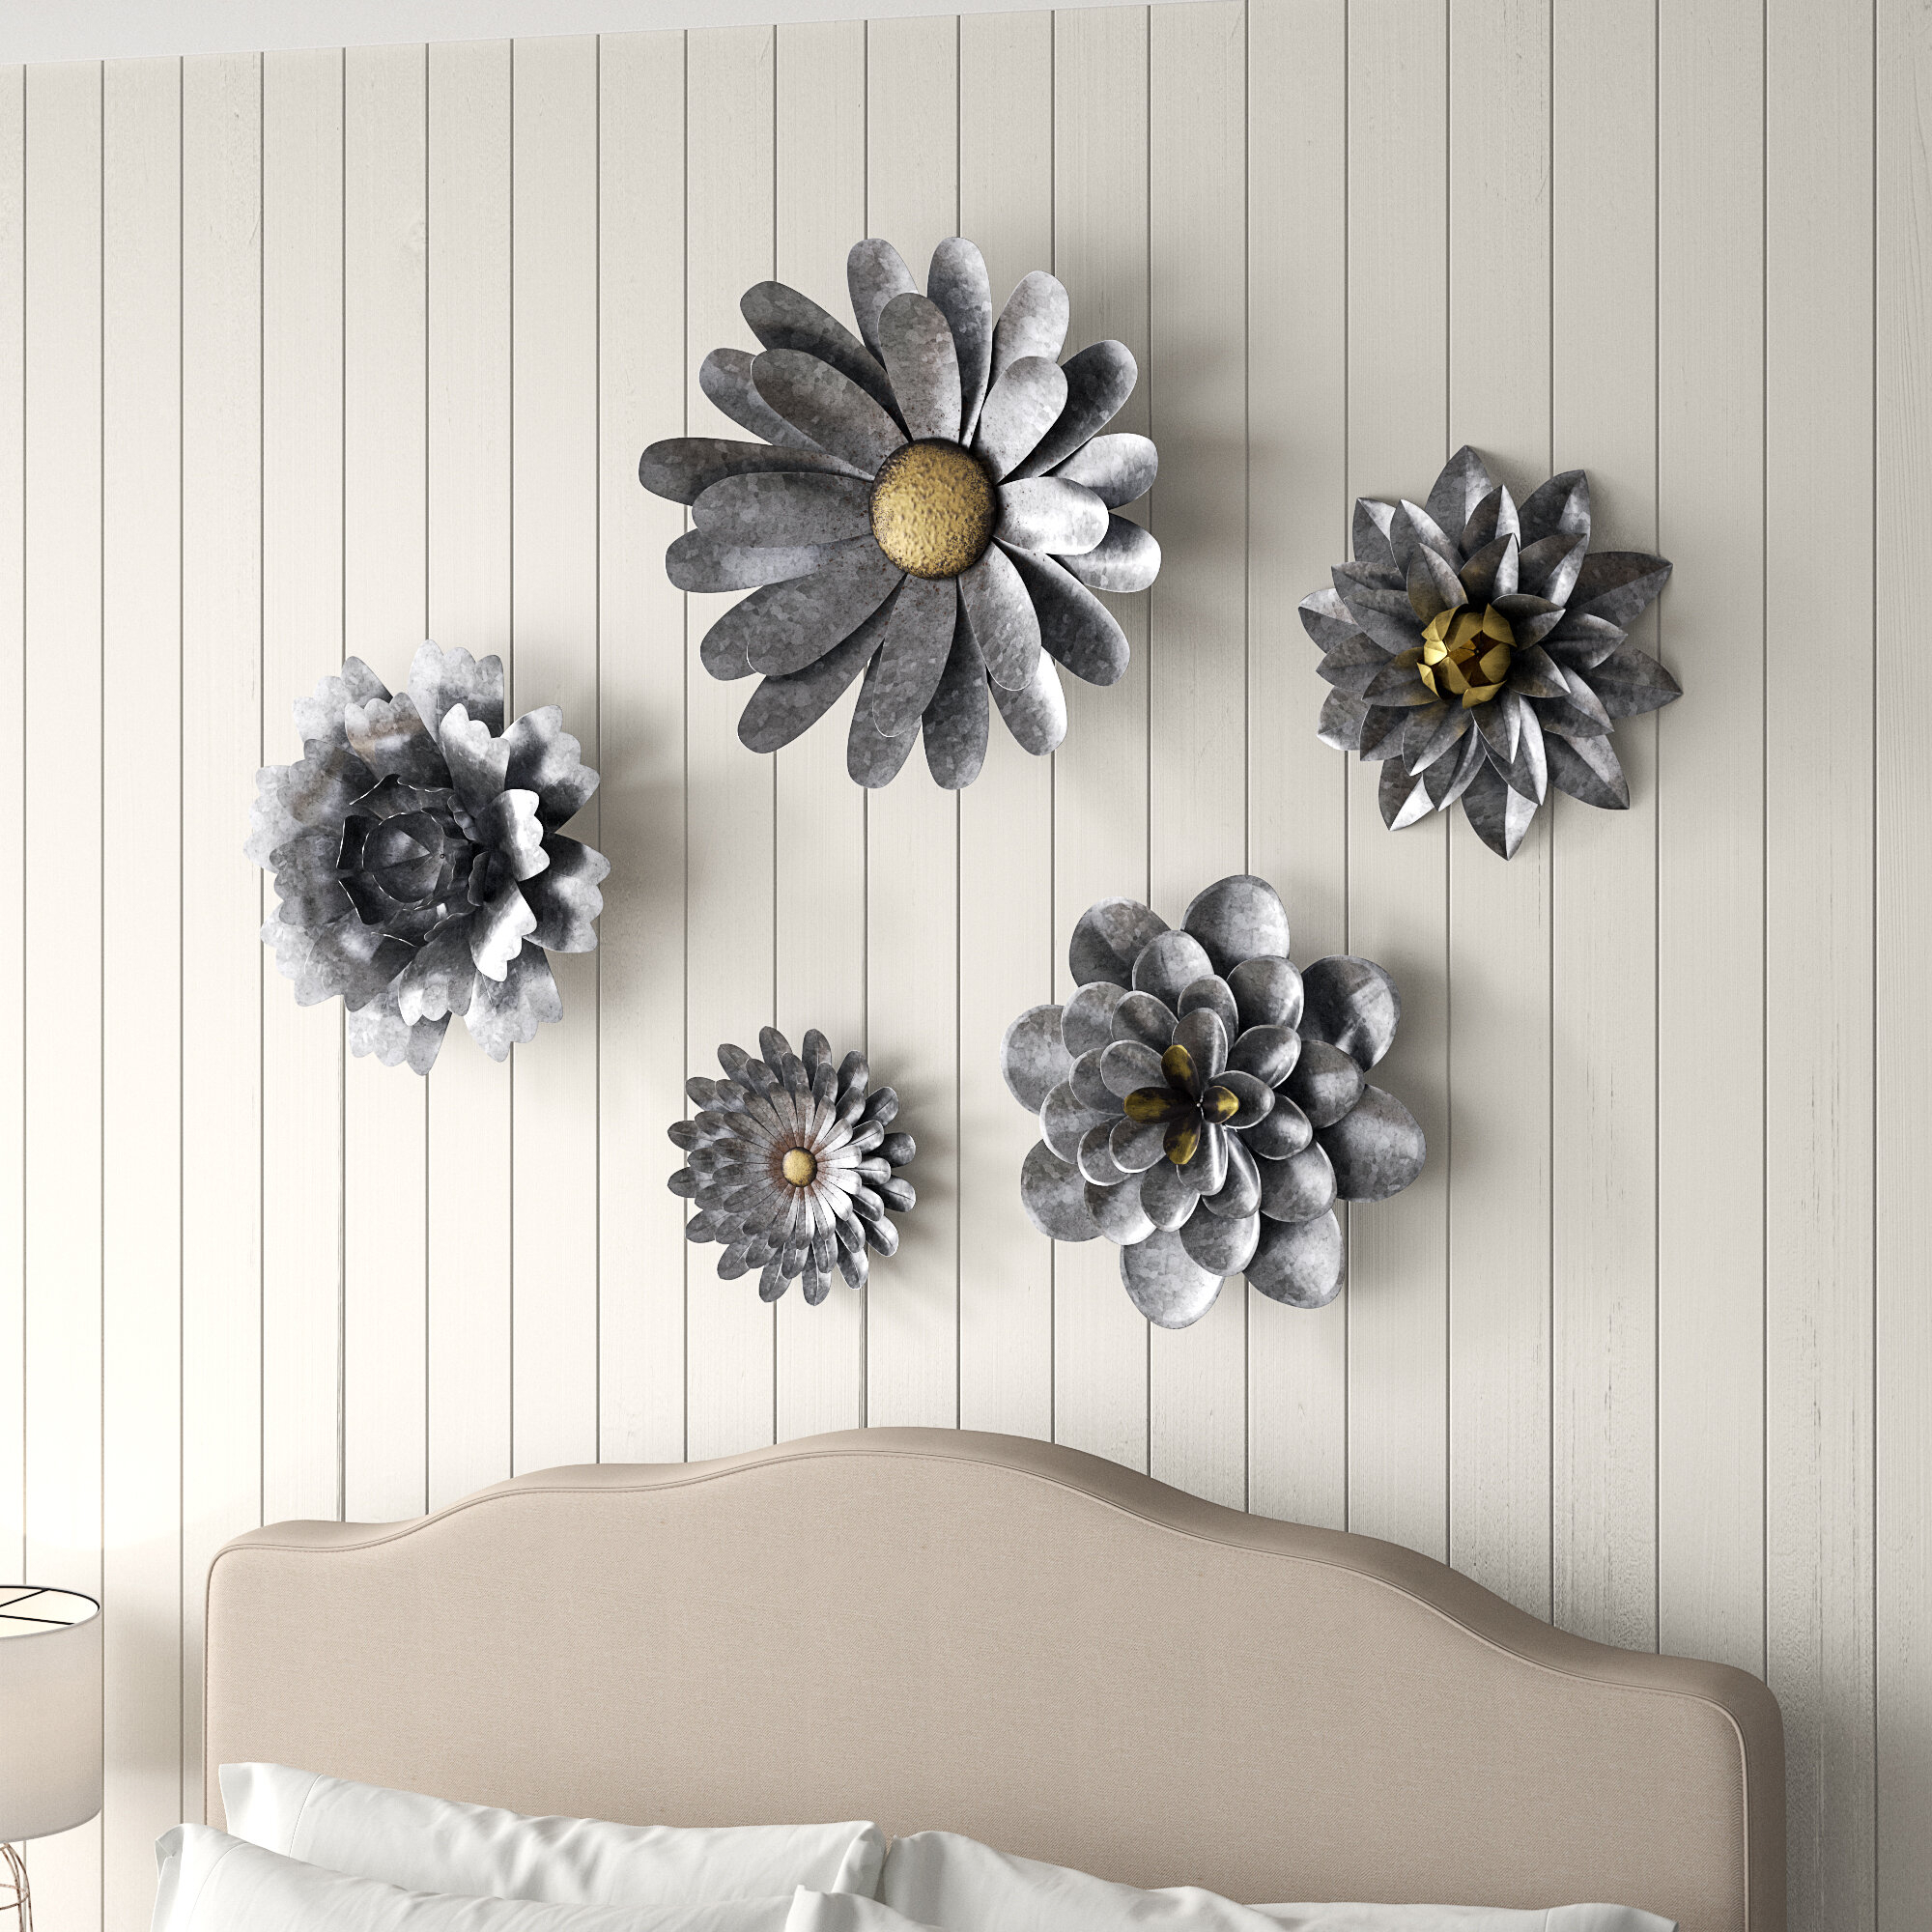 Gracie Oaks 5 Piece Galvanized Metal Flower Hanging Wall Décor Set Regarding Recent 3 Piece Ceramic Flowers Wall Decor Sets (View 12 of 20)